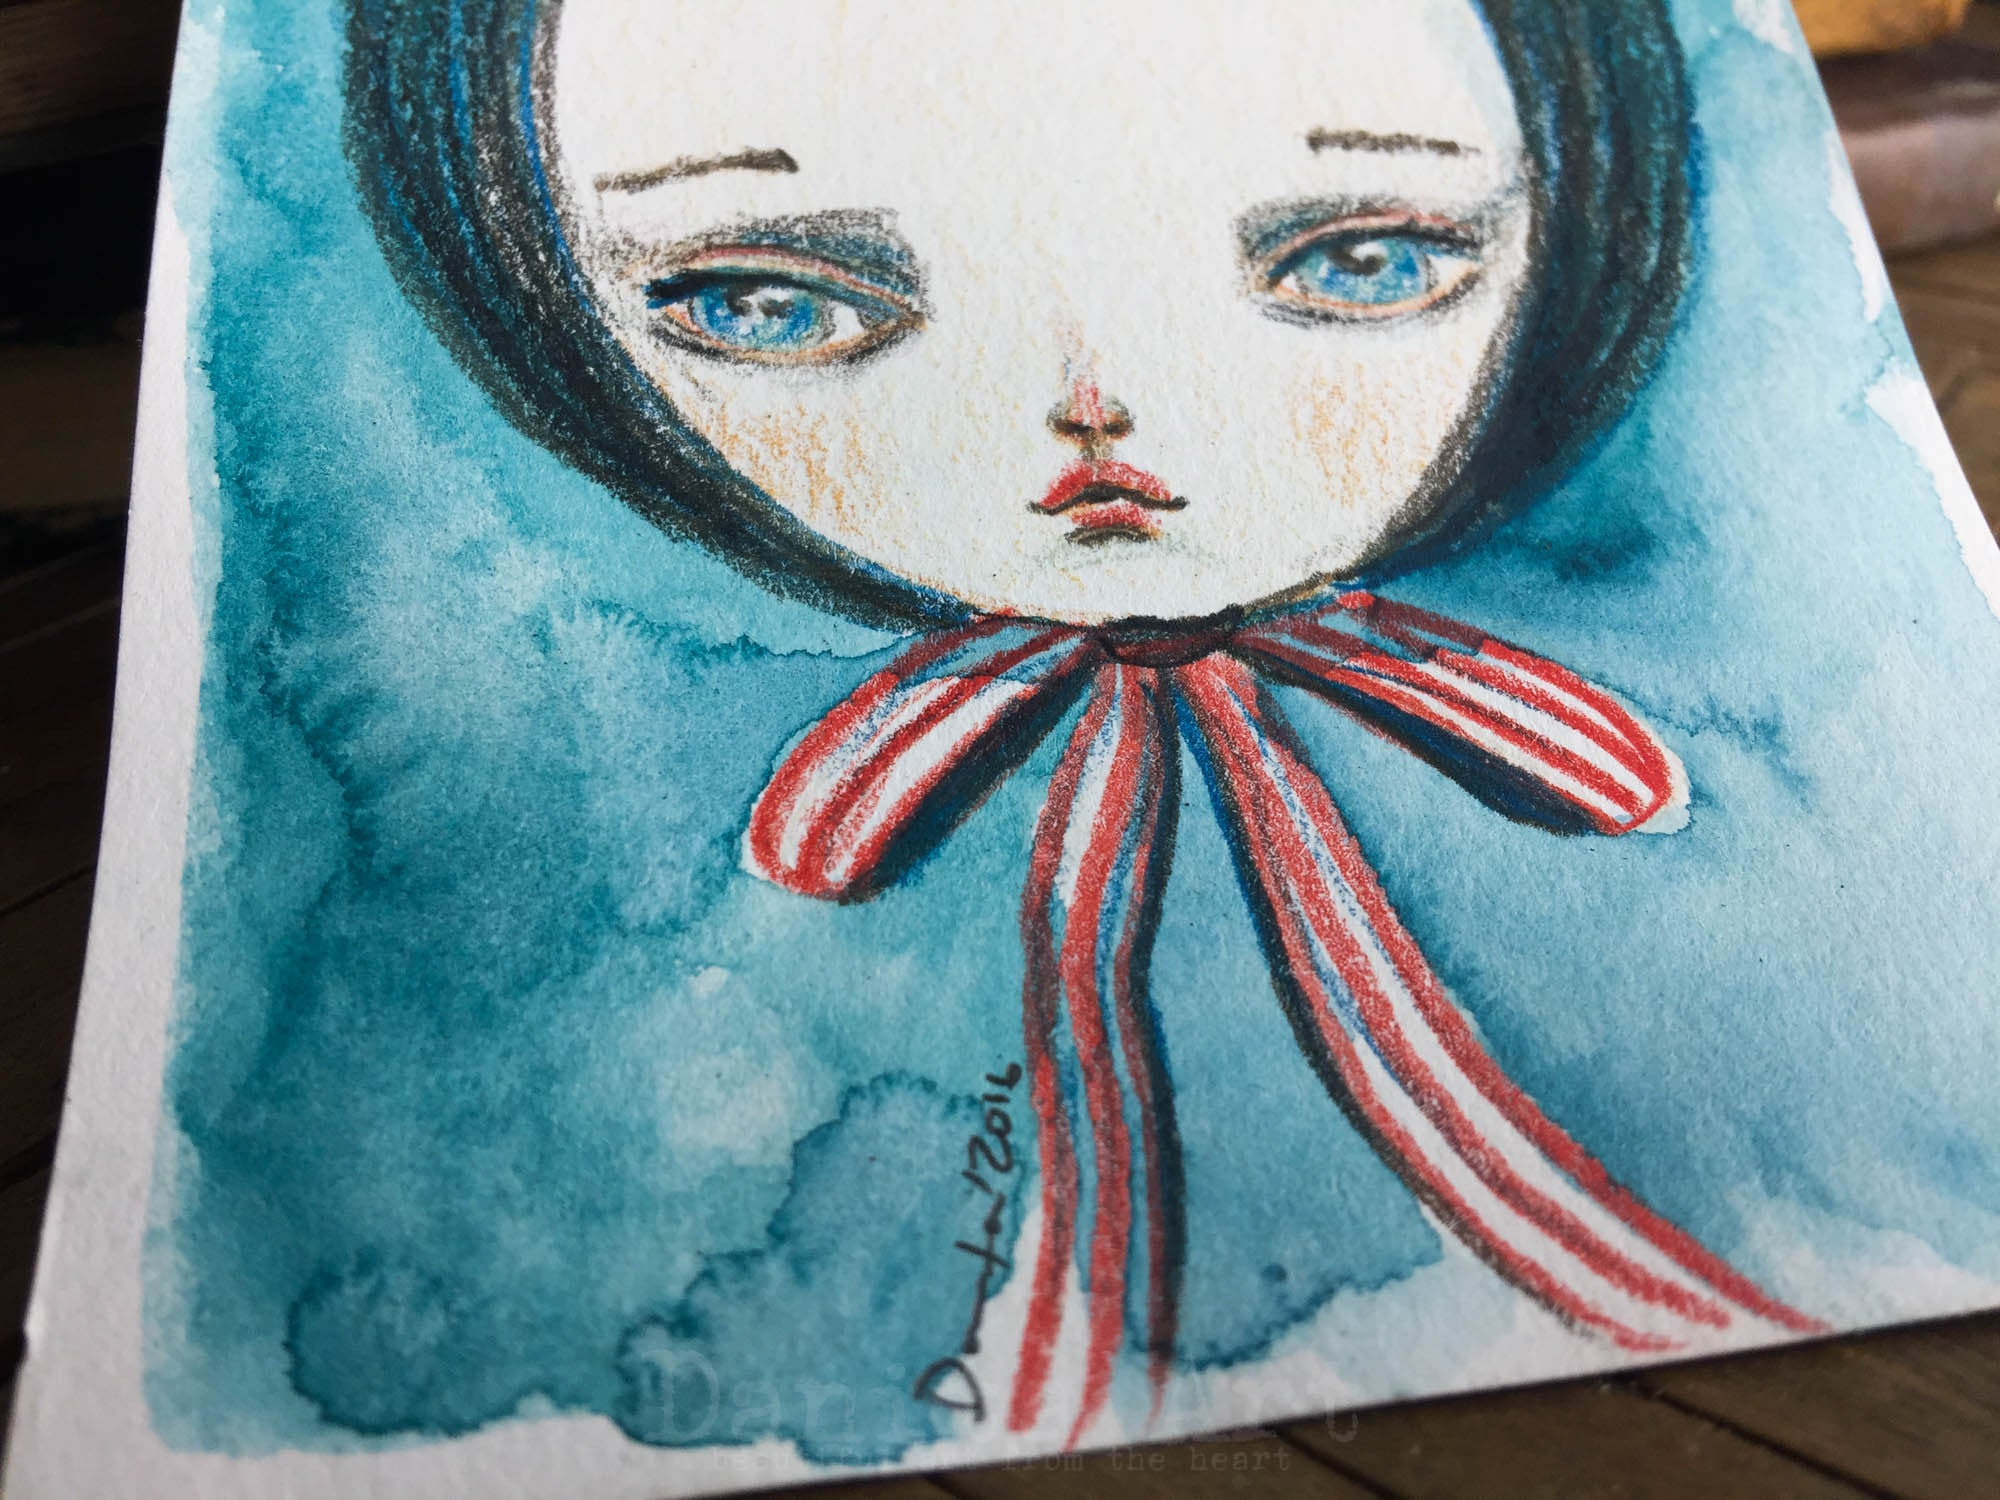 Study of a girl with a red bow, watercolor on paper original by Danita.